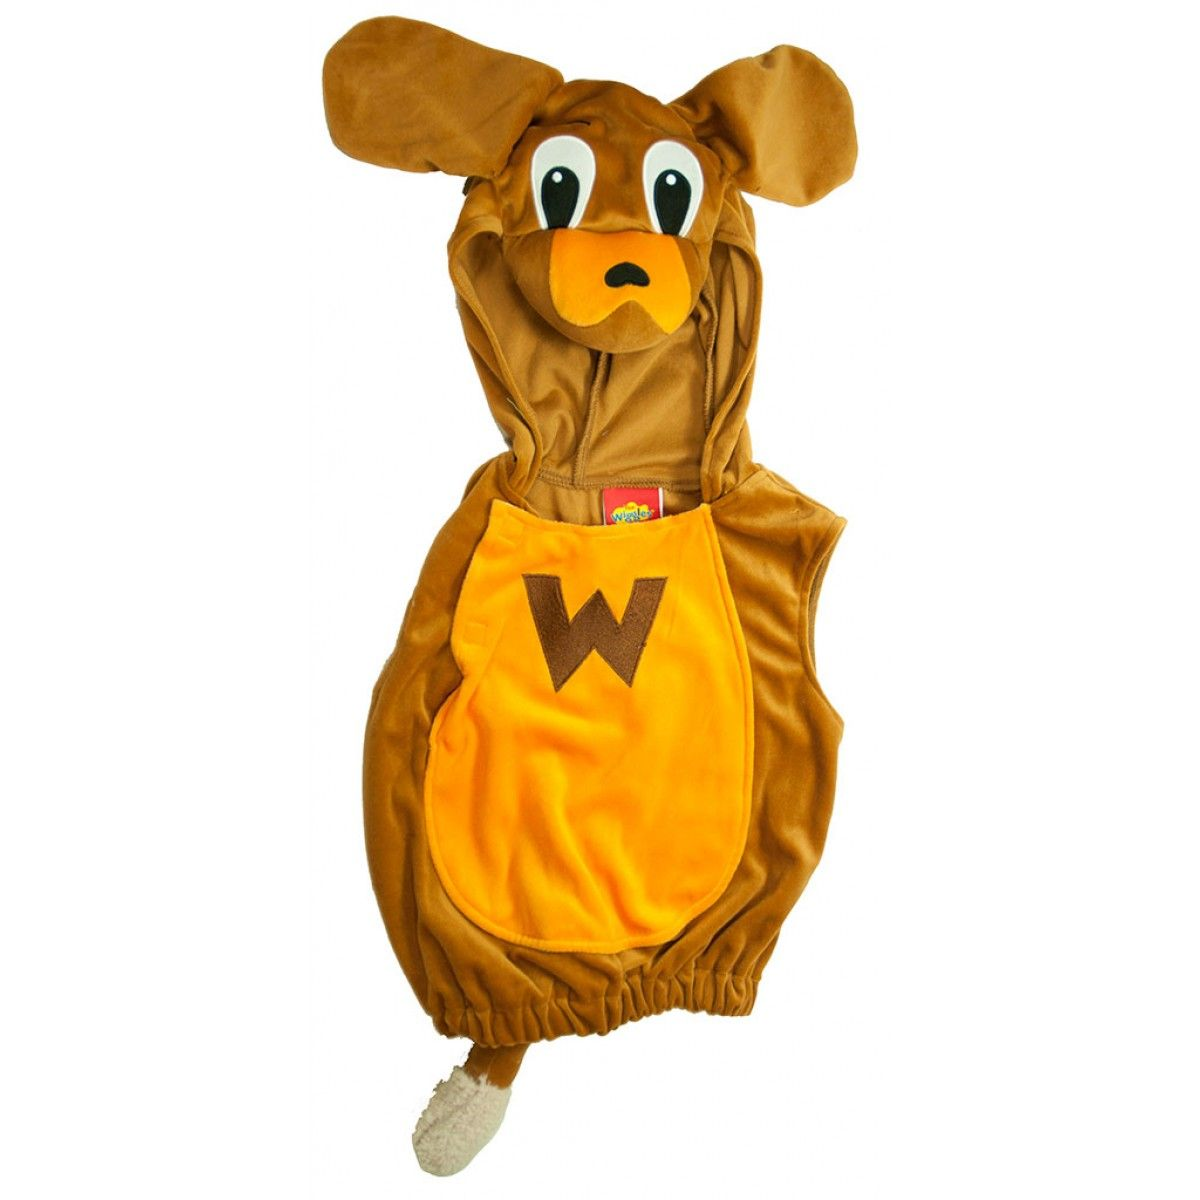 Wags The Dog Costume The Wiggles Costume The Wiggles Wiggle